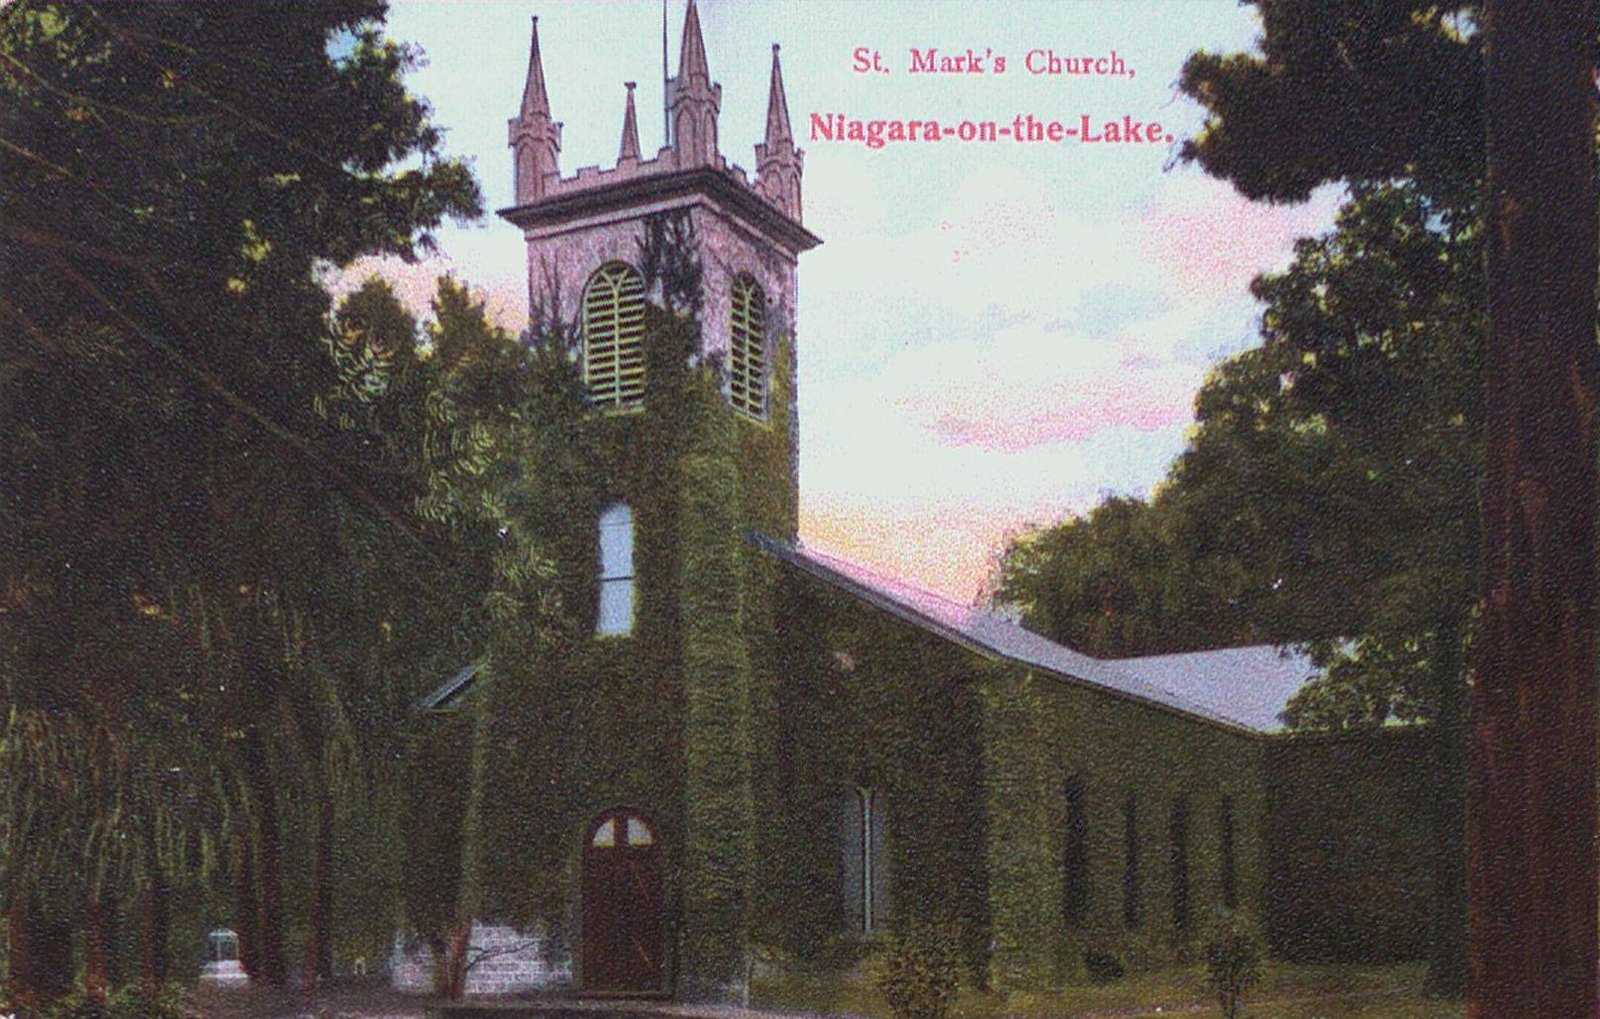 St. Mark's Church, Niagara-on-the-Lake